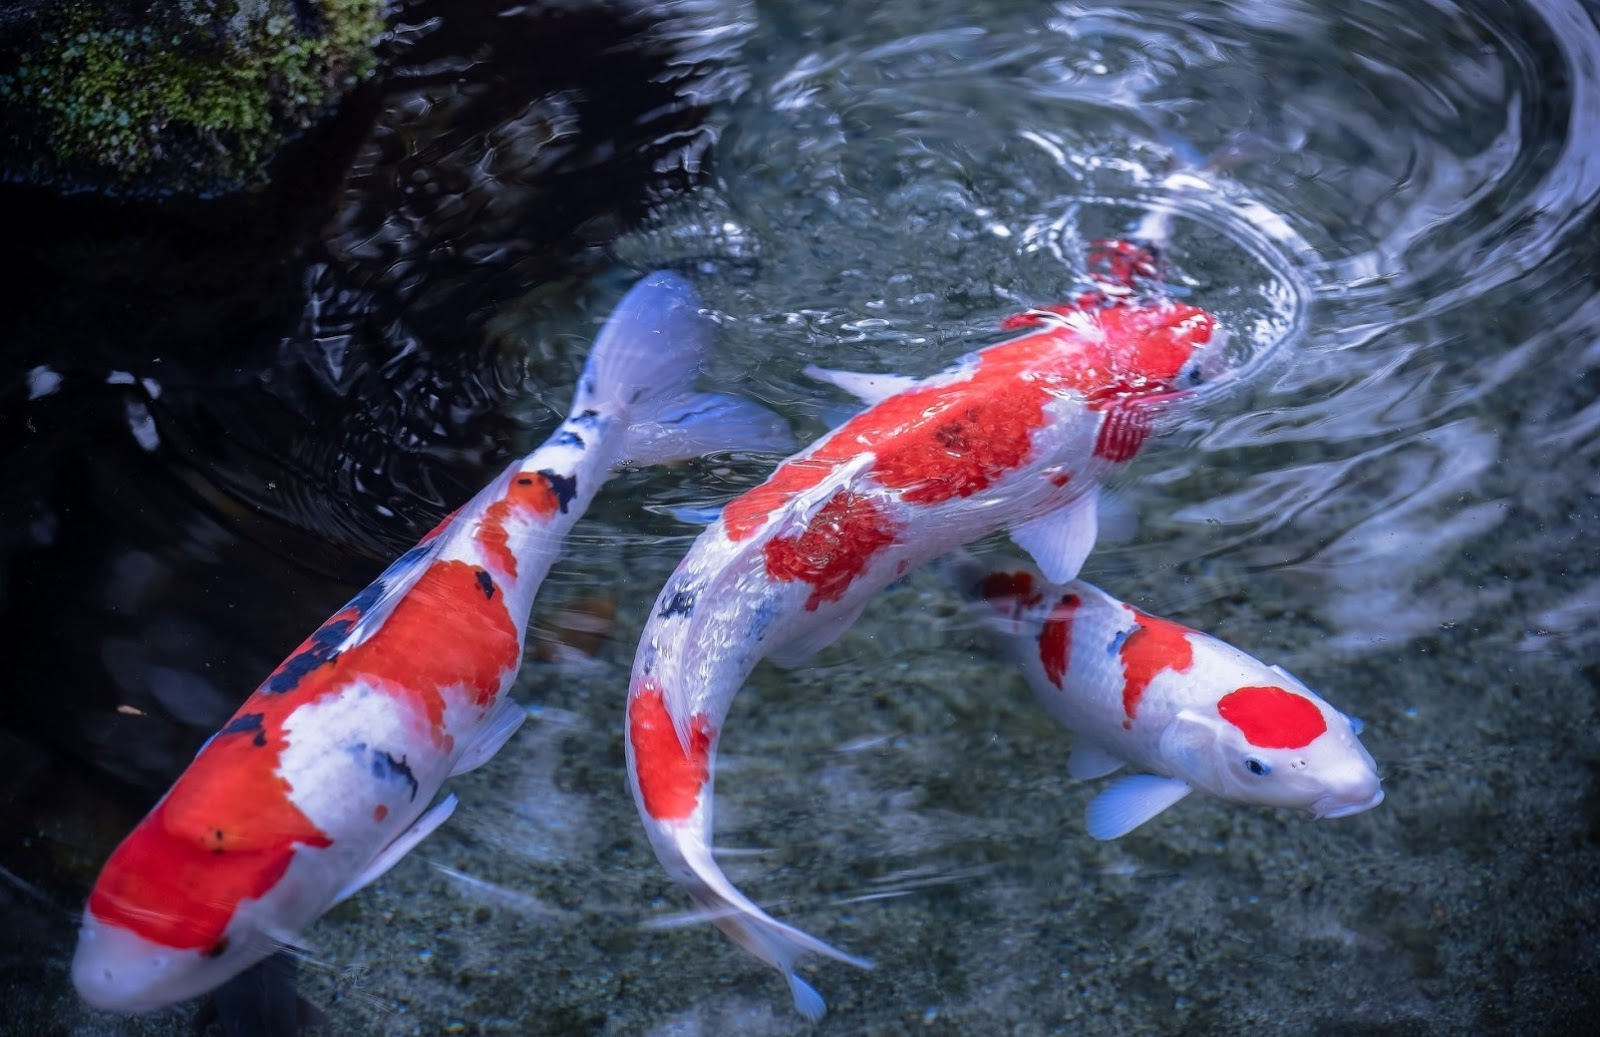 Koi fish fishes world hd images free photos for Koi fish varieties